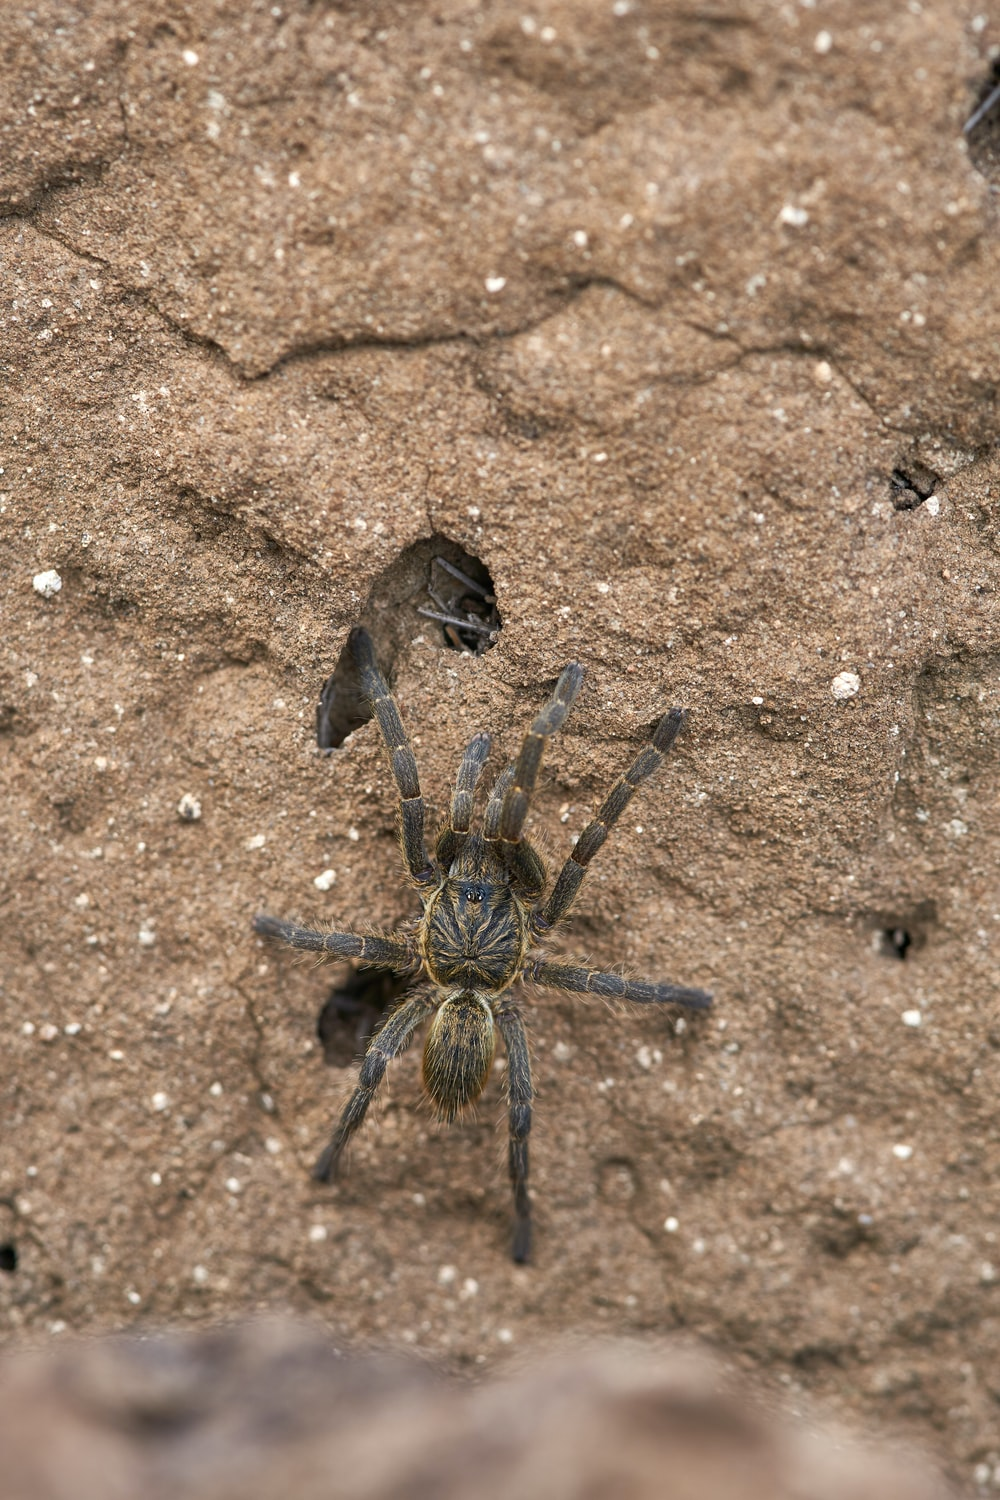 black and brown spider on brown sand